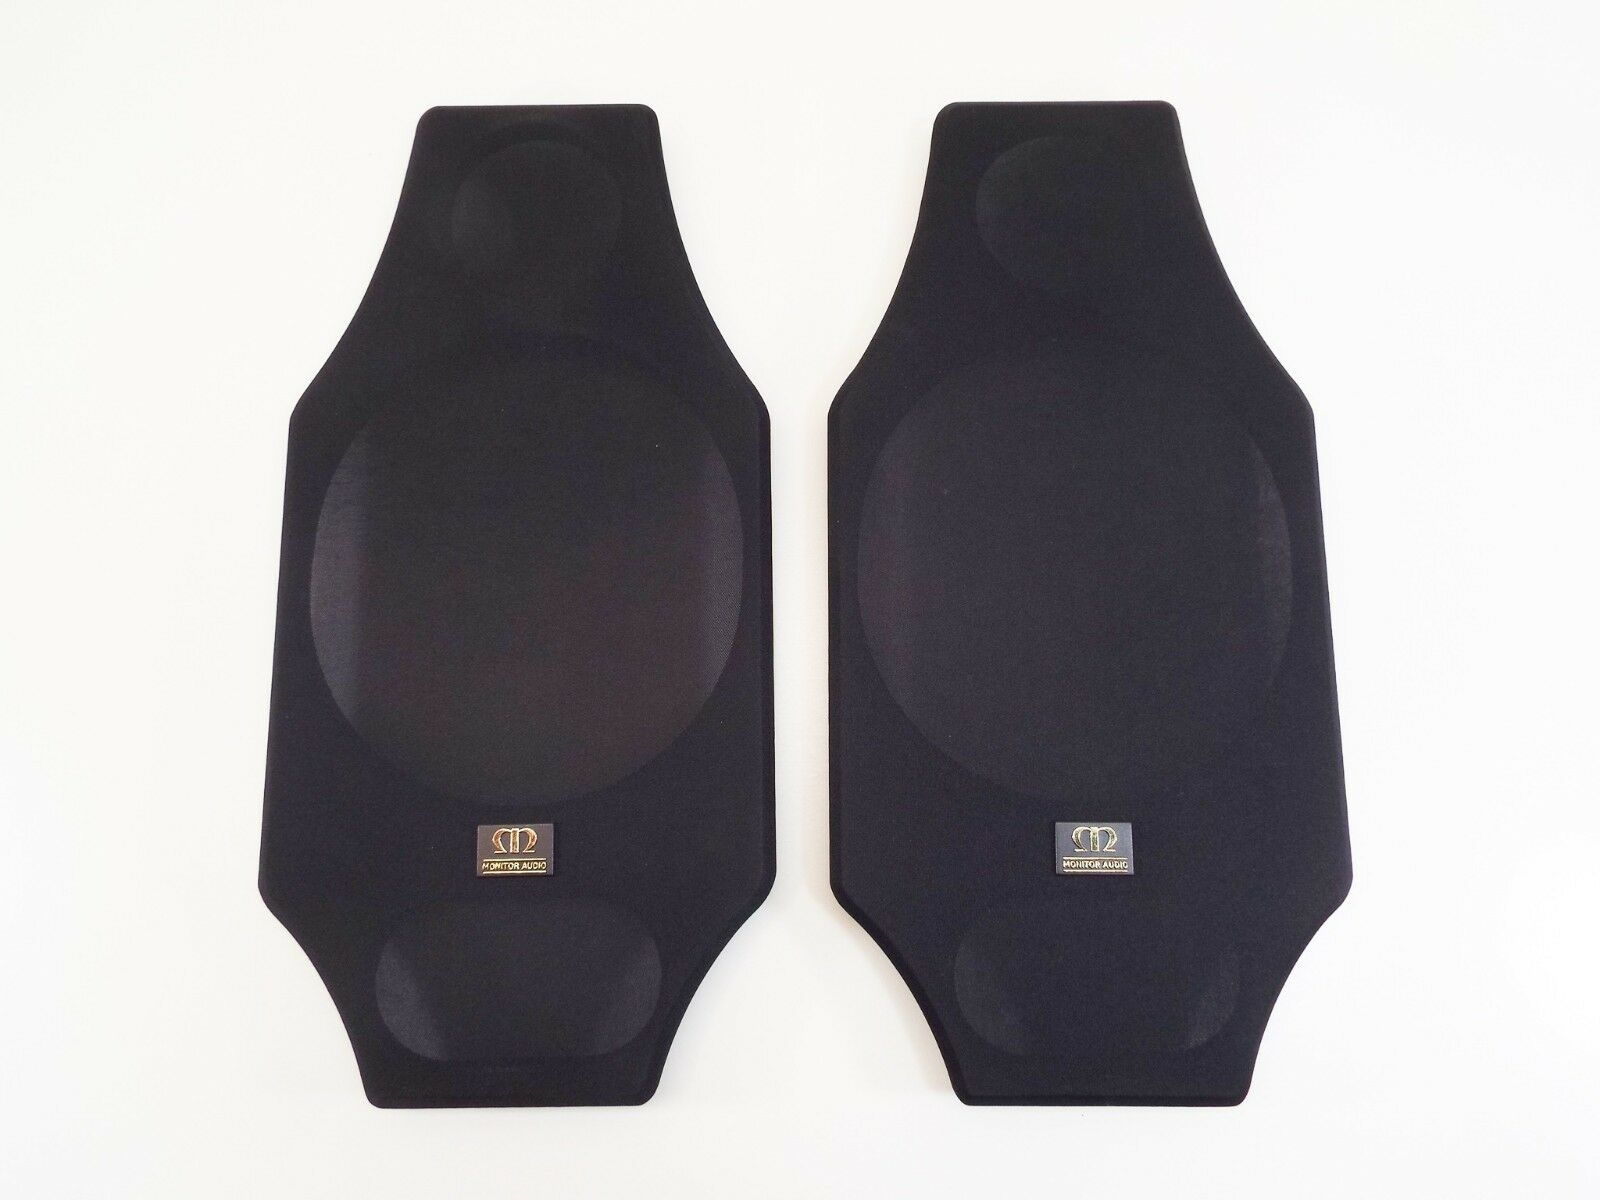 1 pr Monitor Audio Silber 4i Grille Covers - Used, but Great Condition